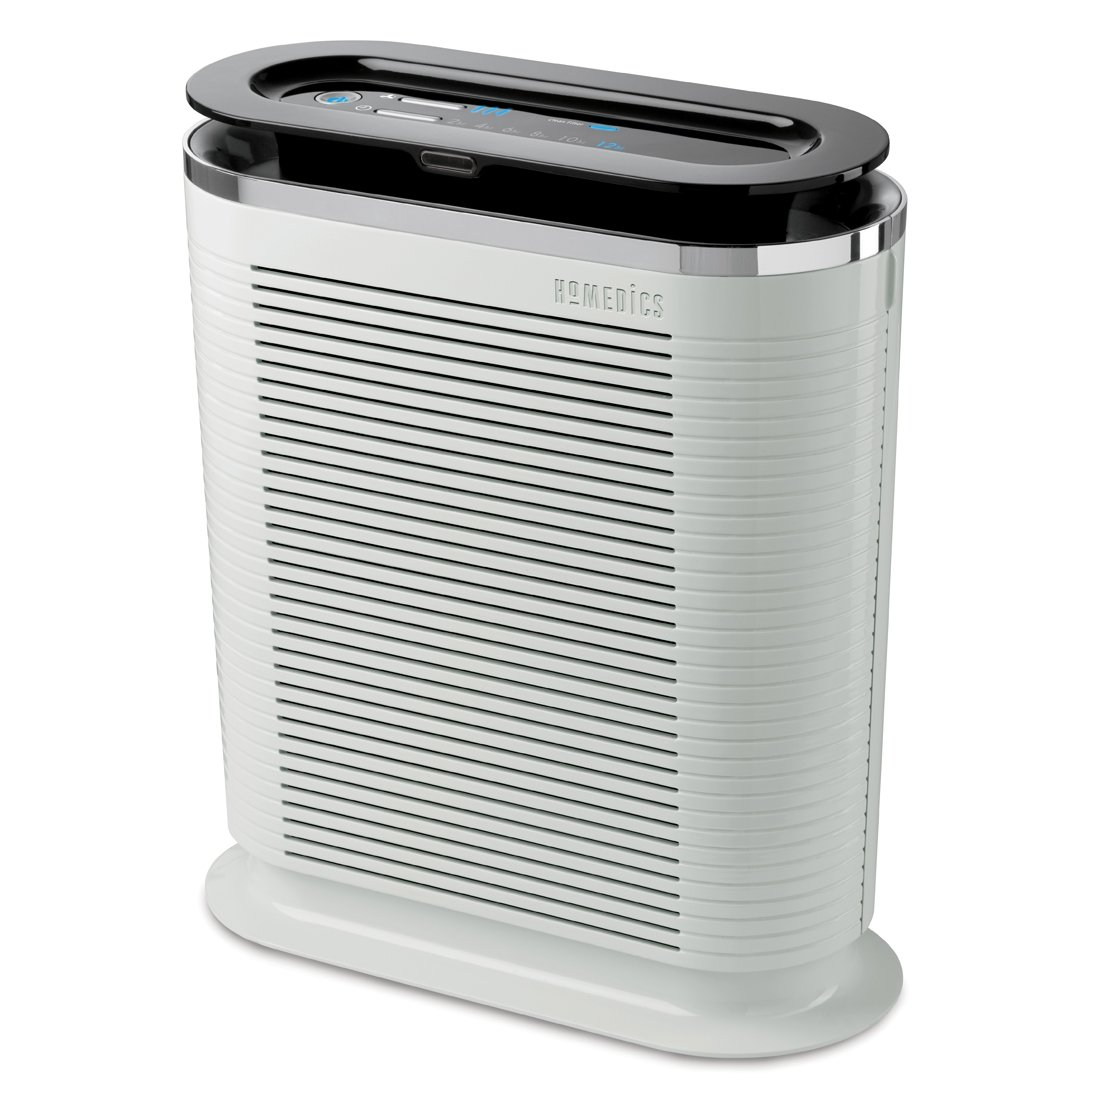 HoMedics HEPA Air Purifier Fan 100 CADR, Keeps Air Fresh, Protects from Allergy Infected Air, Three Cleaning Modes, Eliminates up to 99% of Allergens, Relieve Asthma, Hay Fever, British Allergy Foundation Approved, Remote Control for Simple and Easy Use -